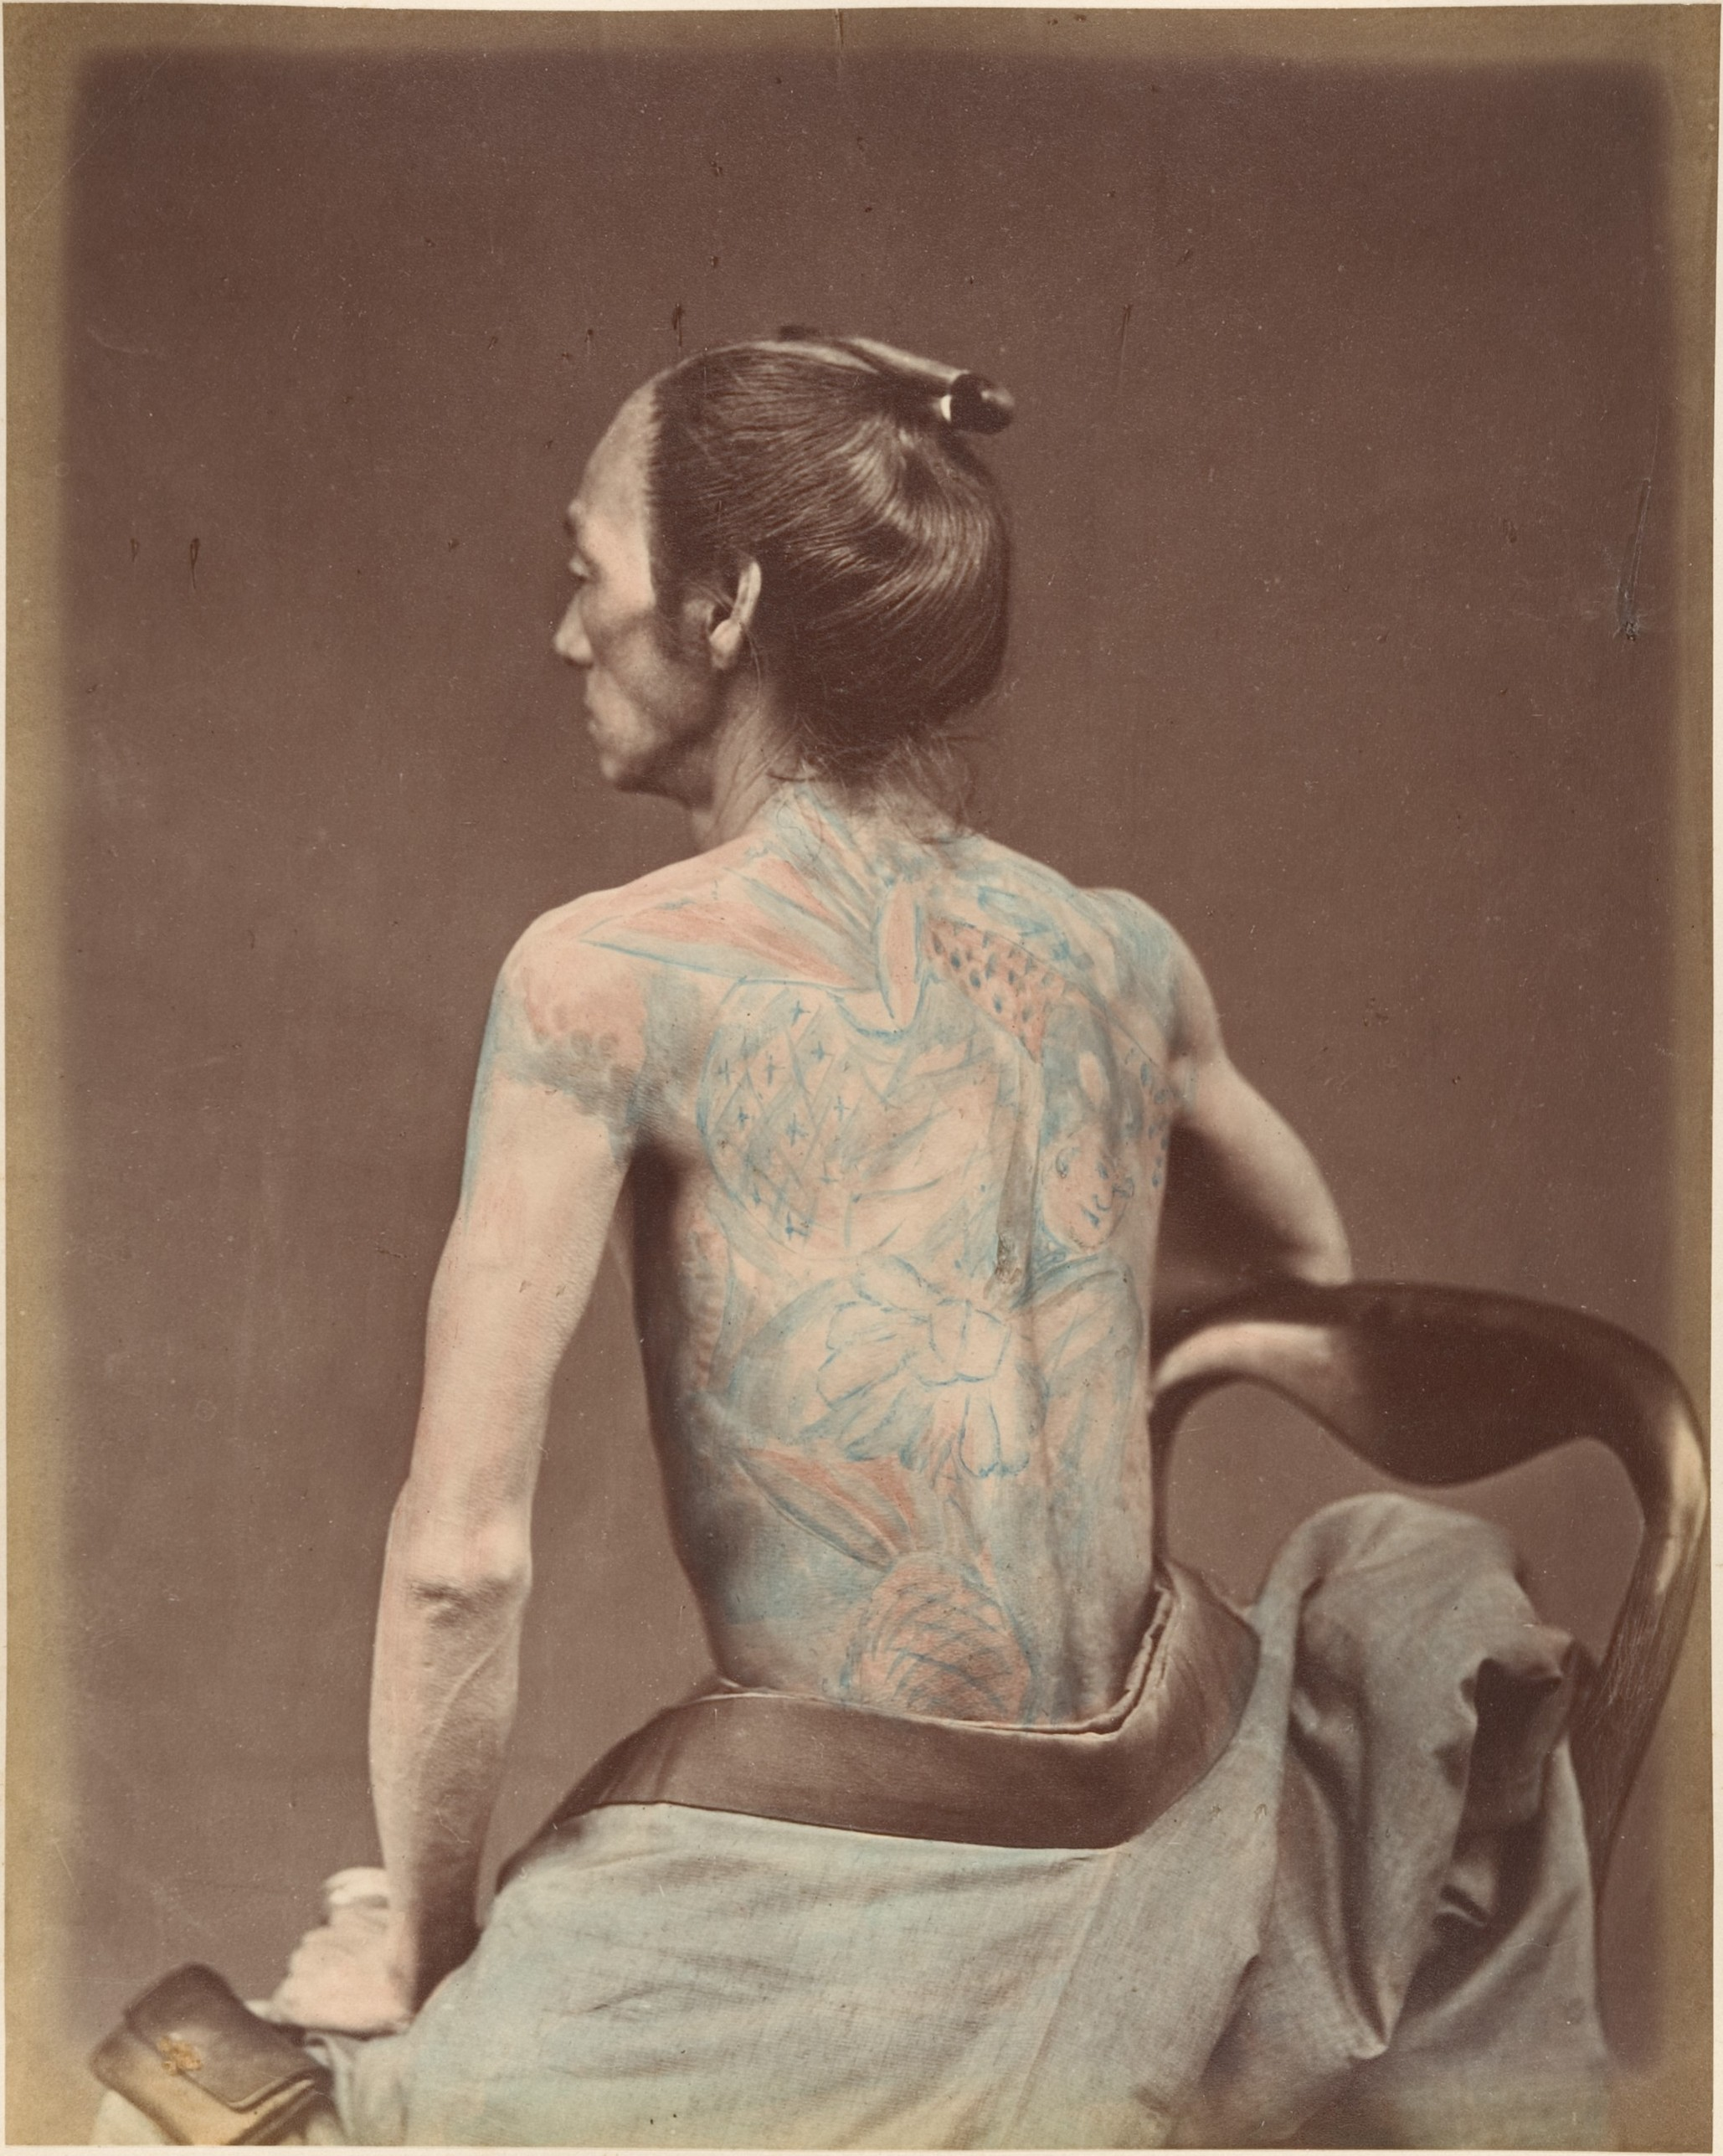 photograph, black and white with colorisation, man with back tattoo